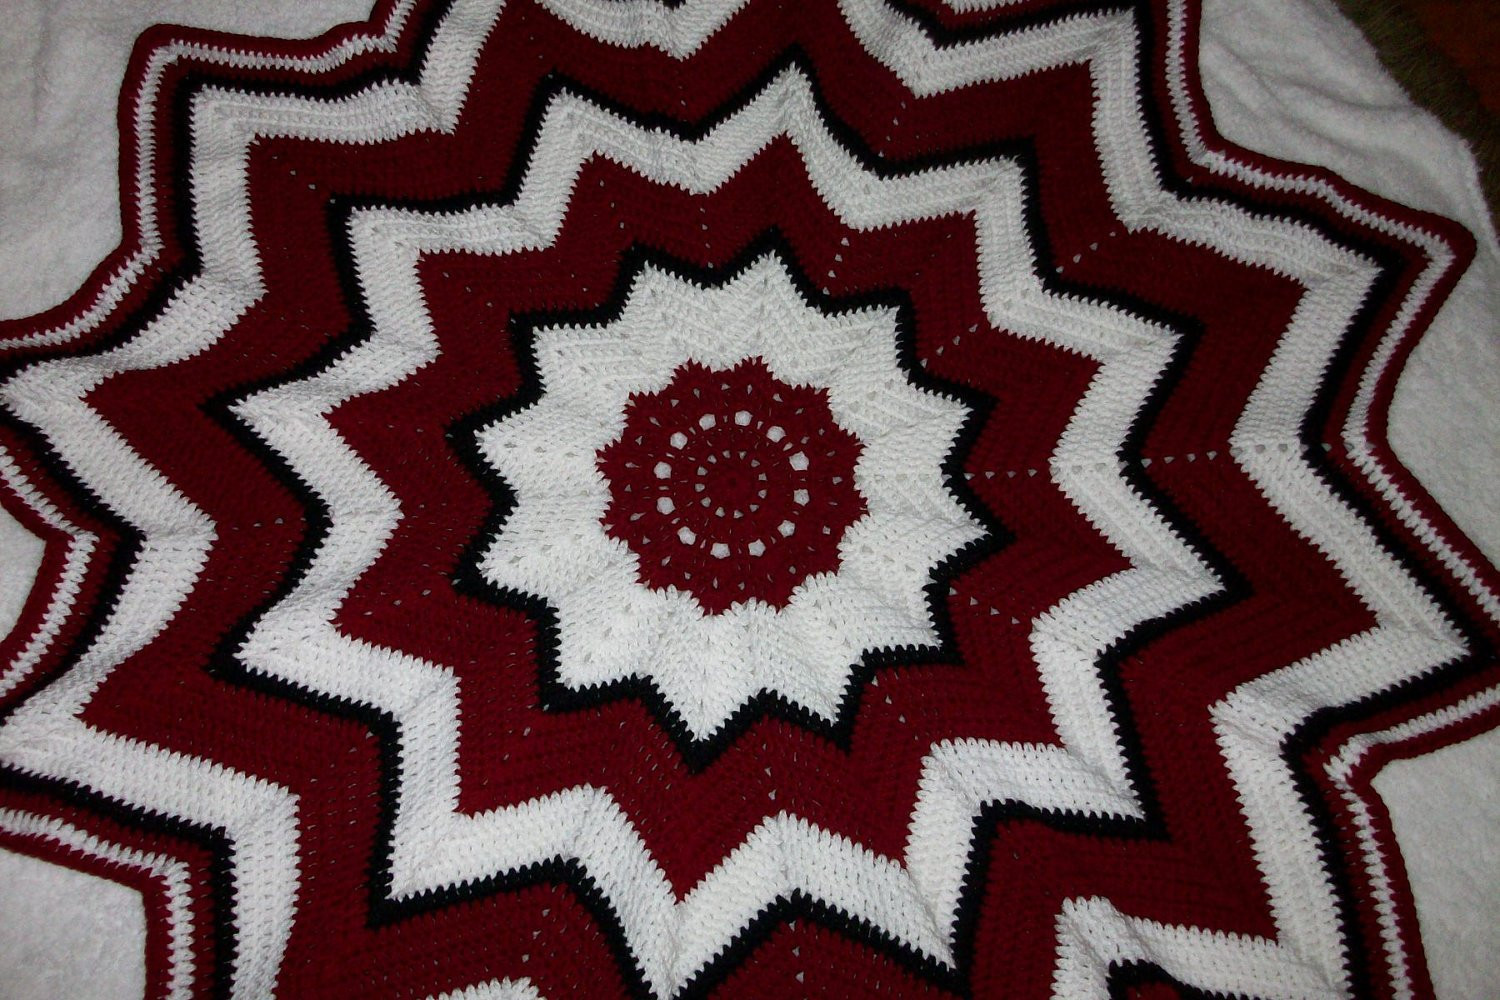 Star Blanket Crochet Pattern Inspirational Crochet Star Afghan Free Shipping Of Adorable 46 Pictures Star Blanket Crochet Pattern